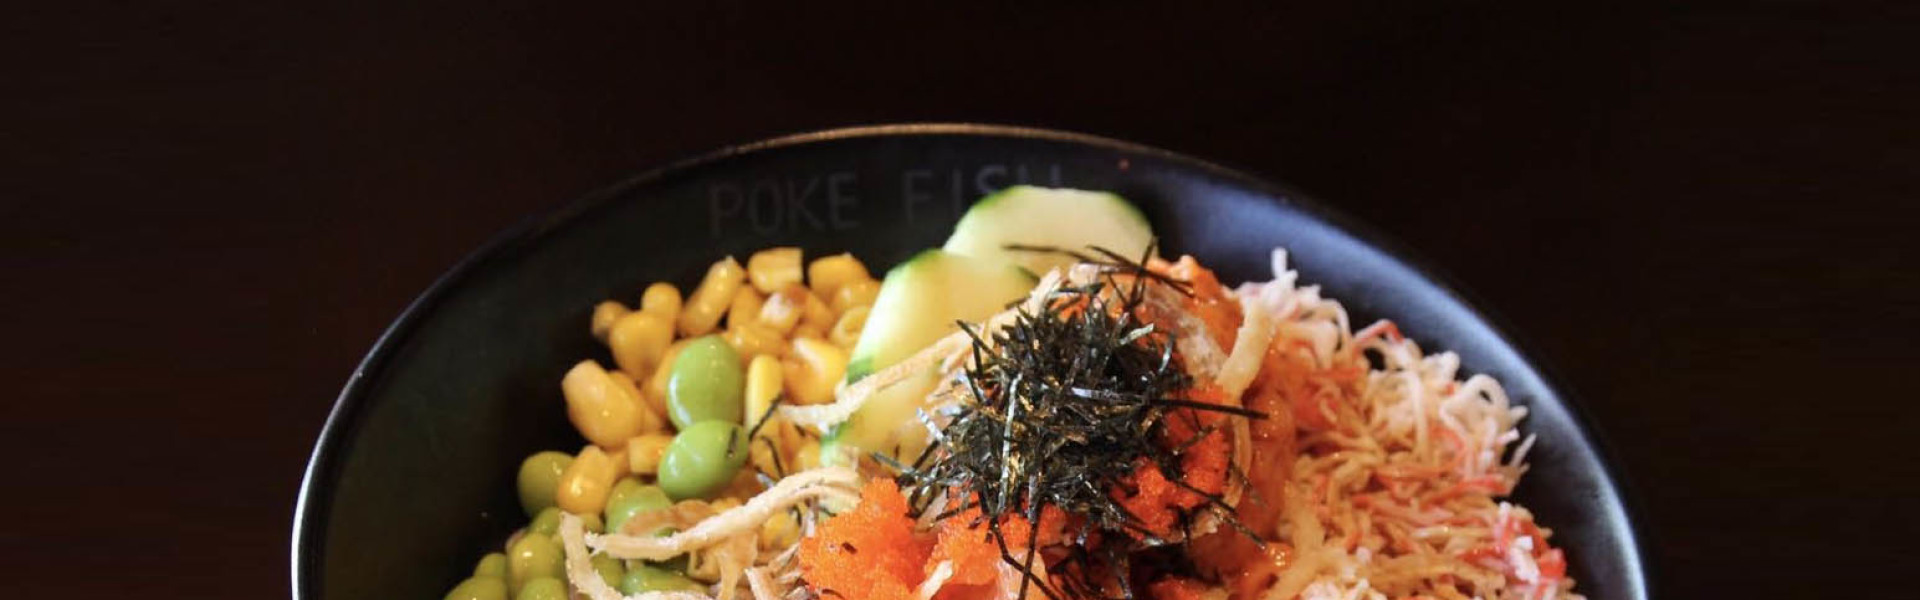 Poke Fish Ann Arbor Location